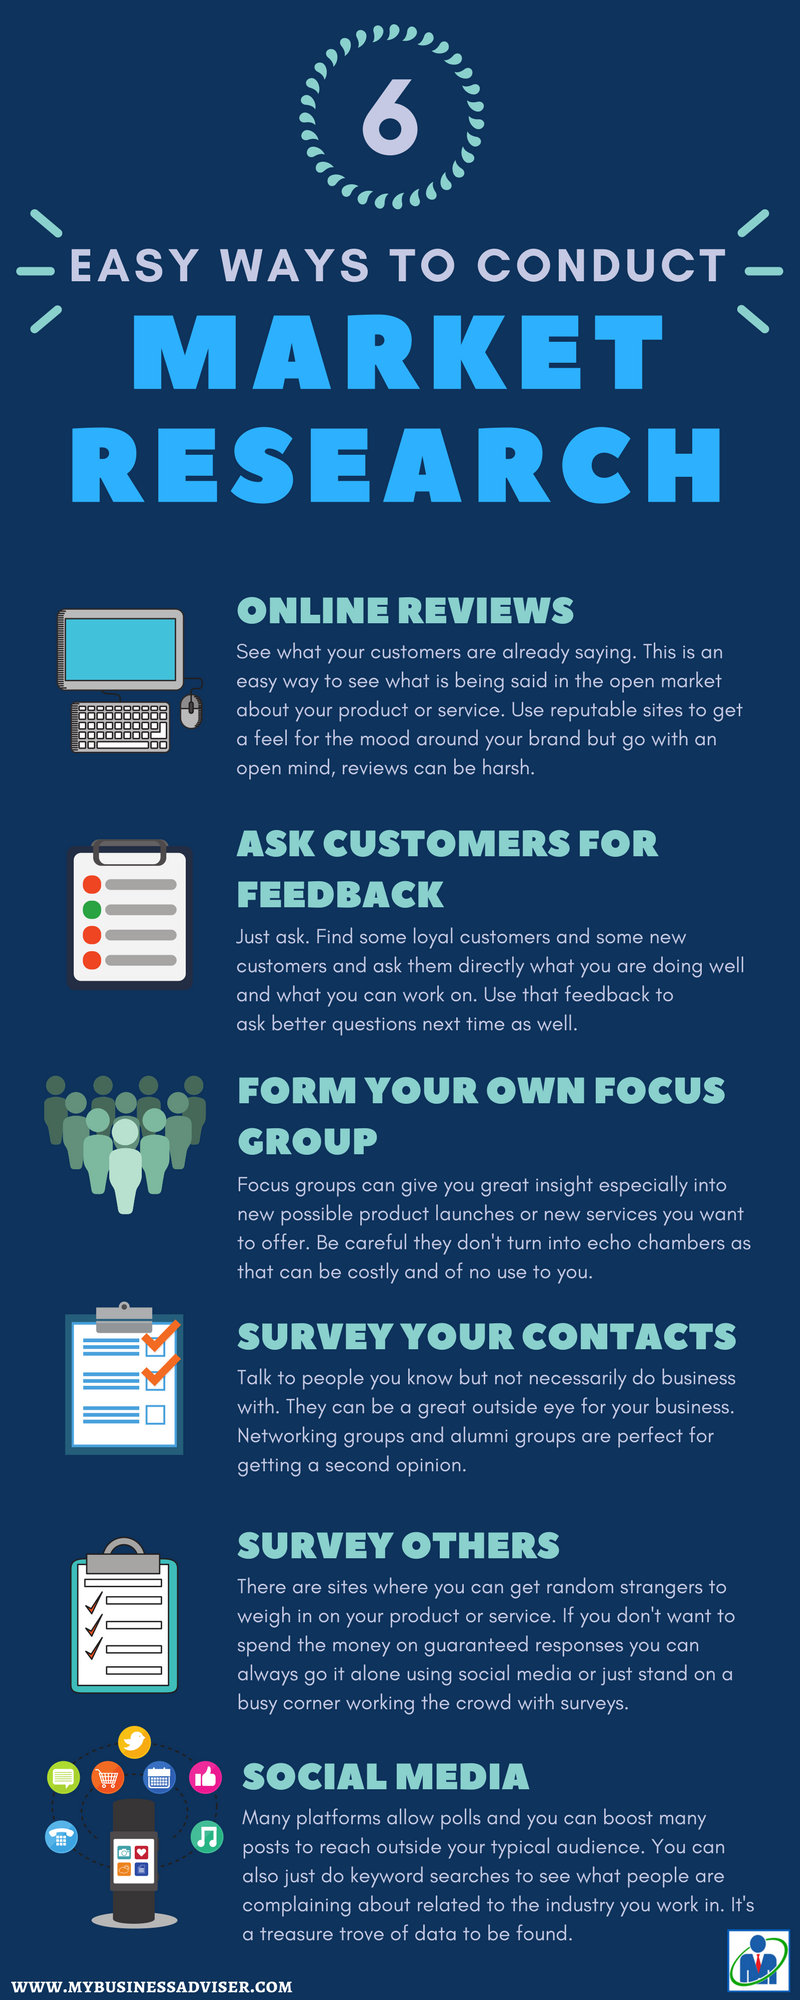 Market Research - 5 Easy Ways to conduct Market Research